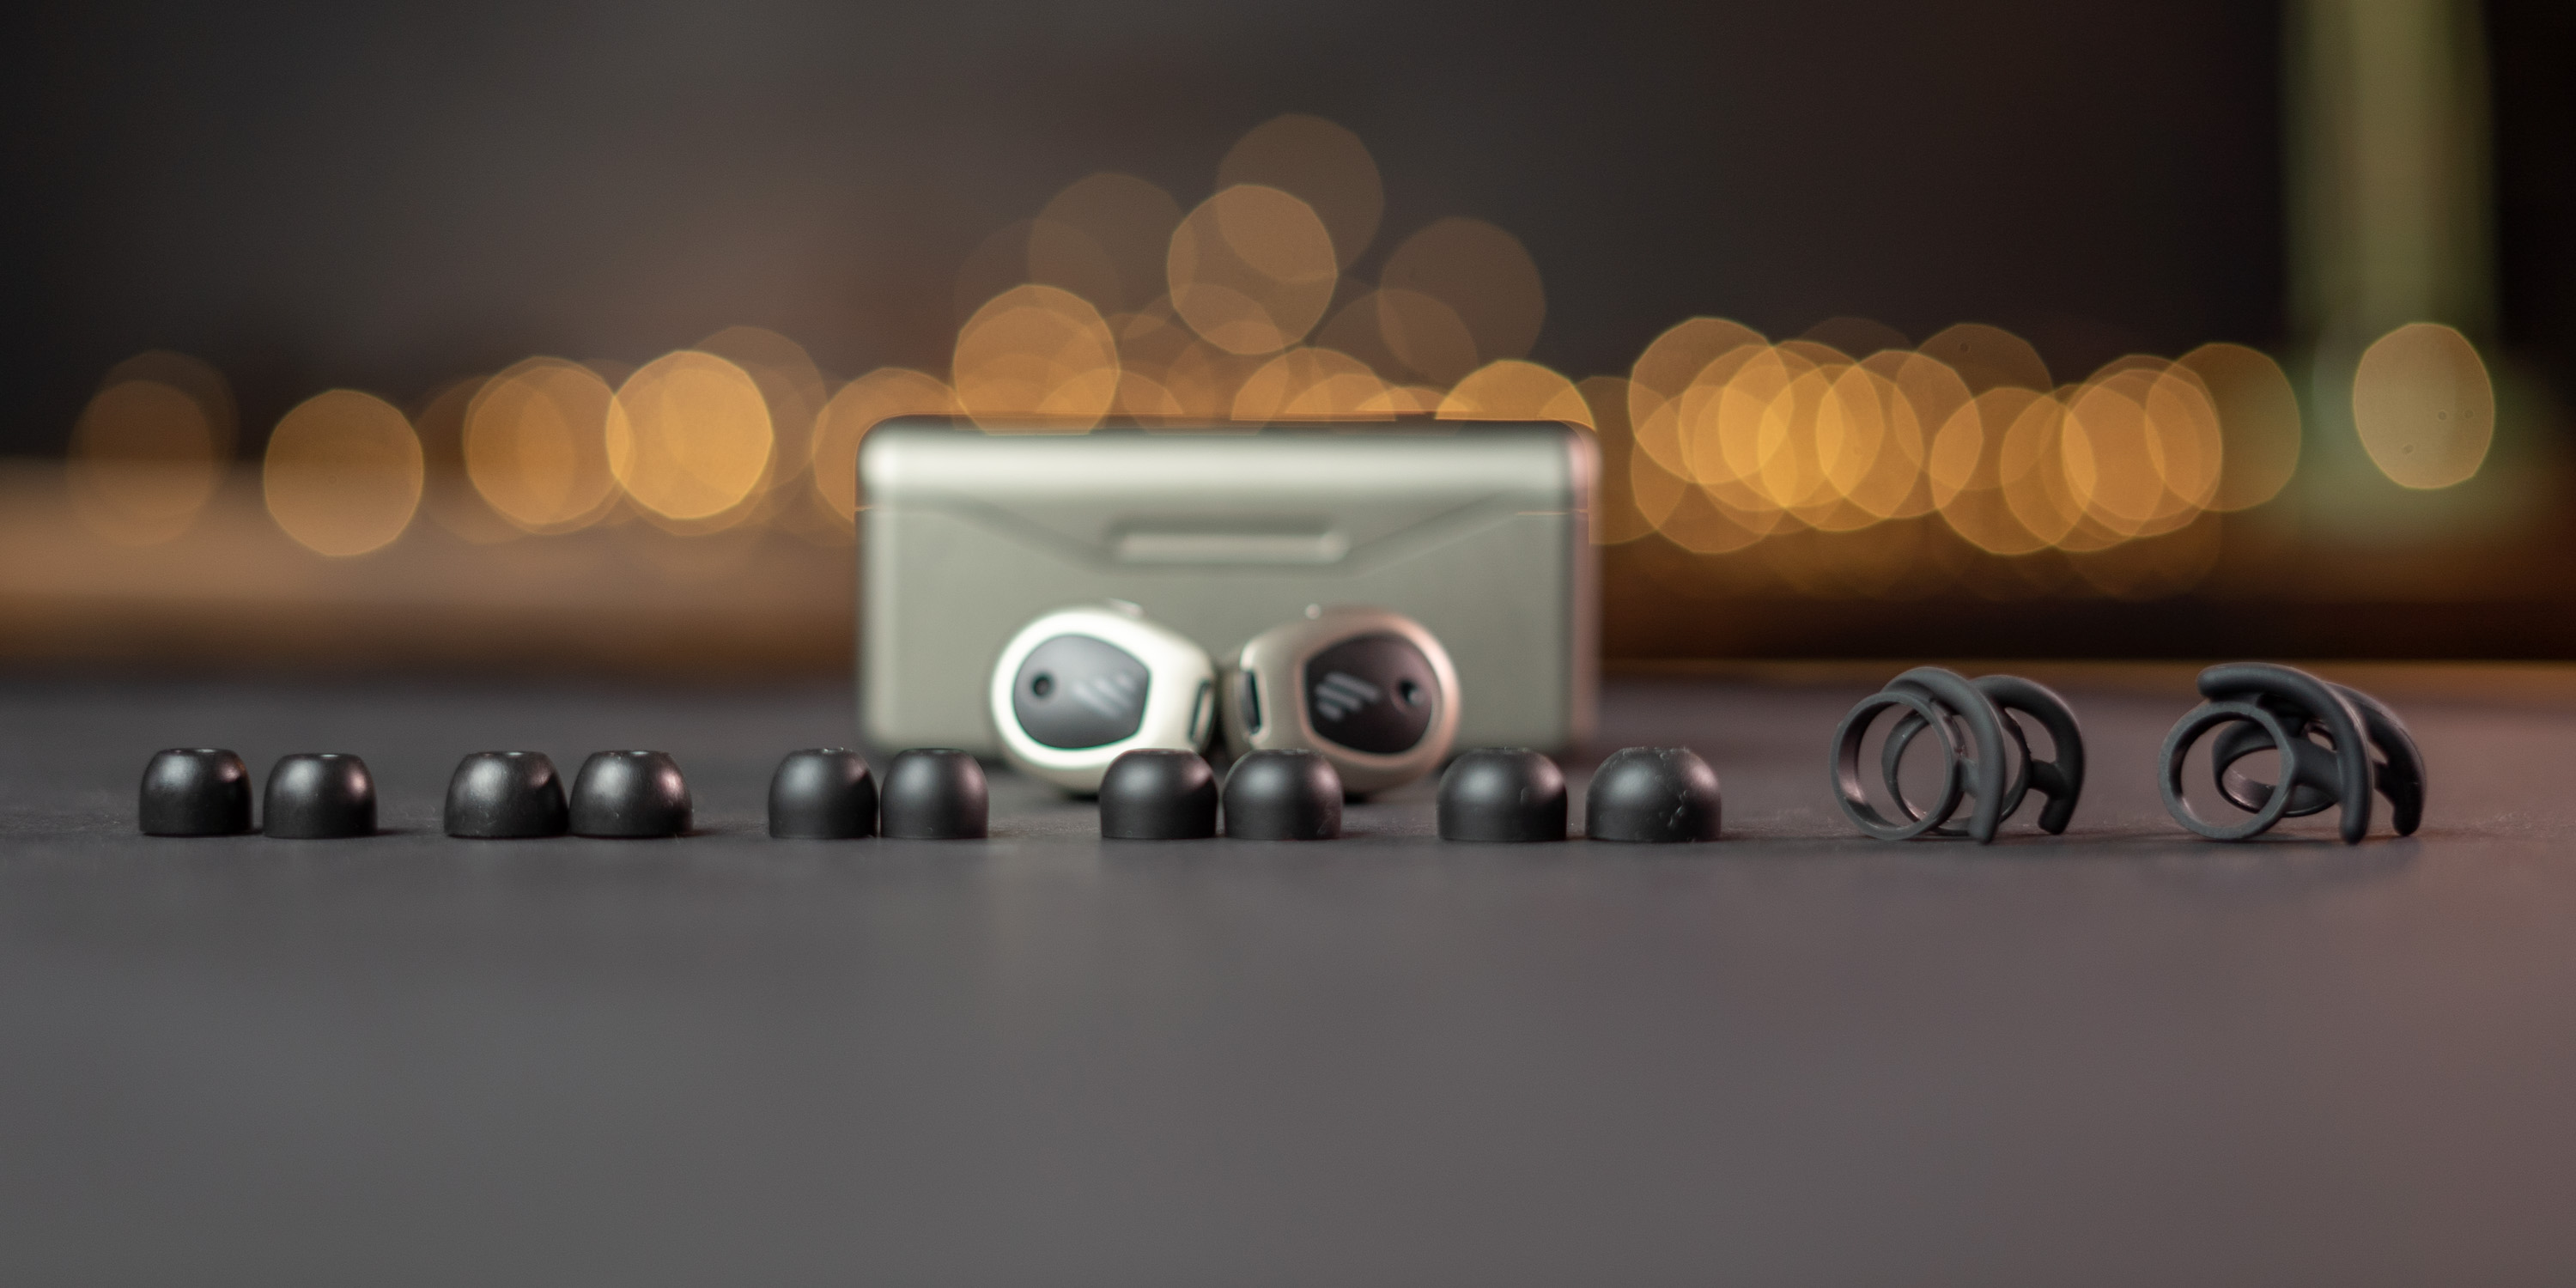 Accessories with Edifier TWS NB earbuds